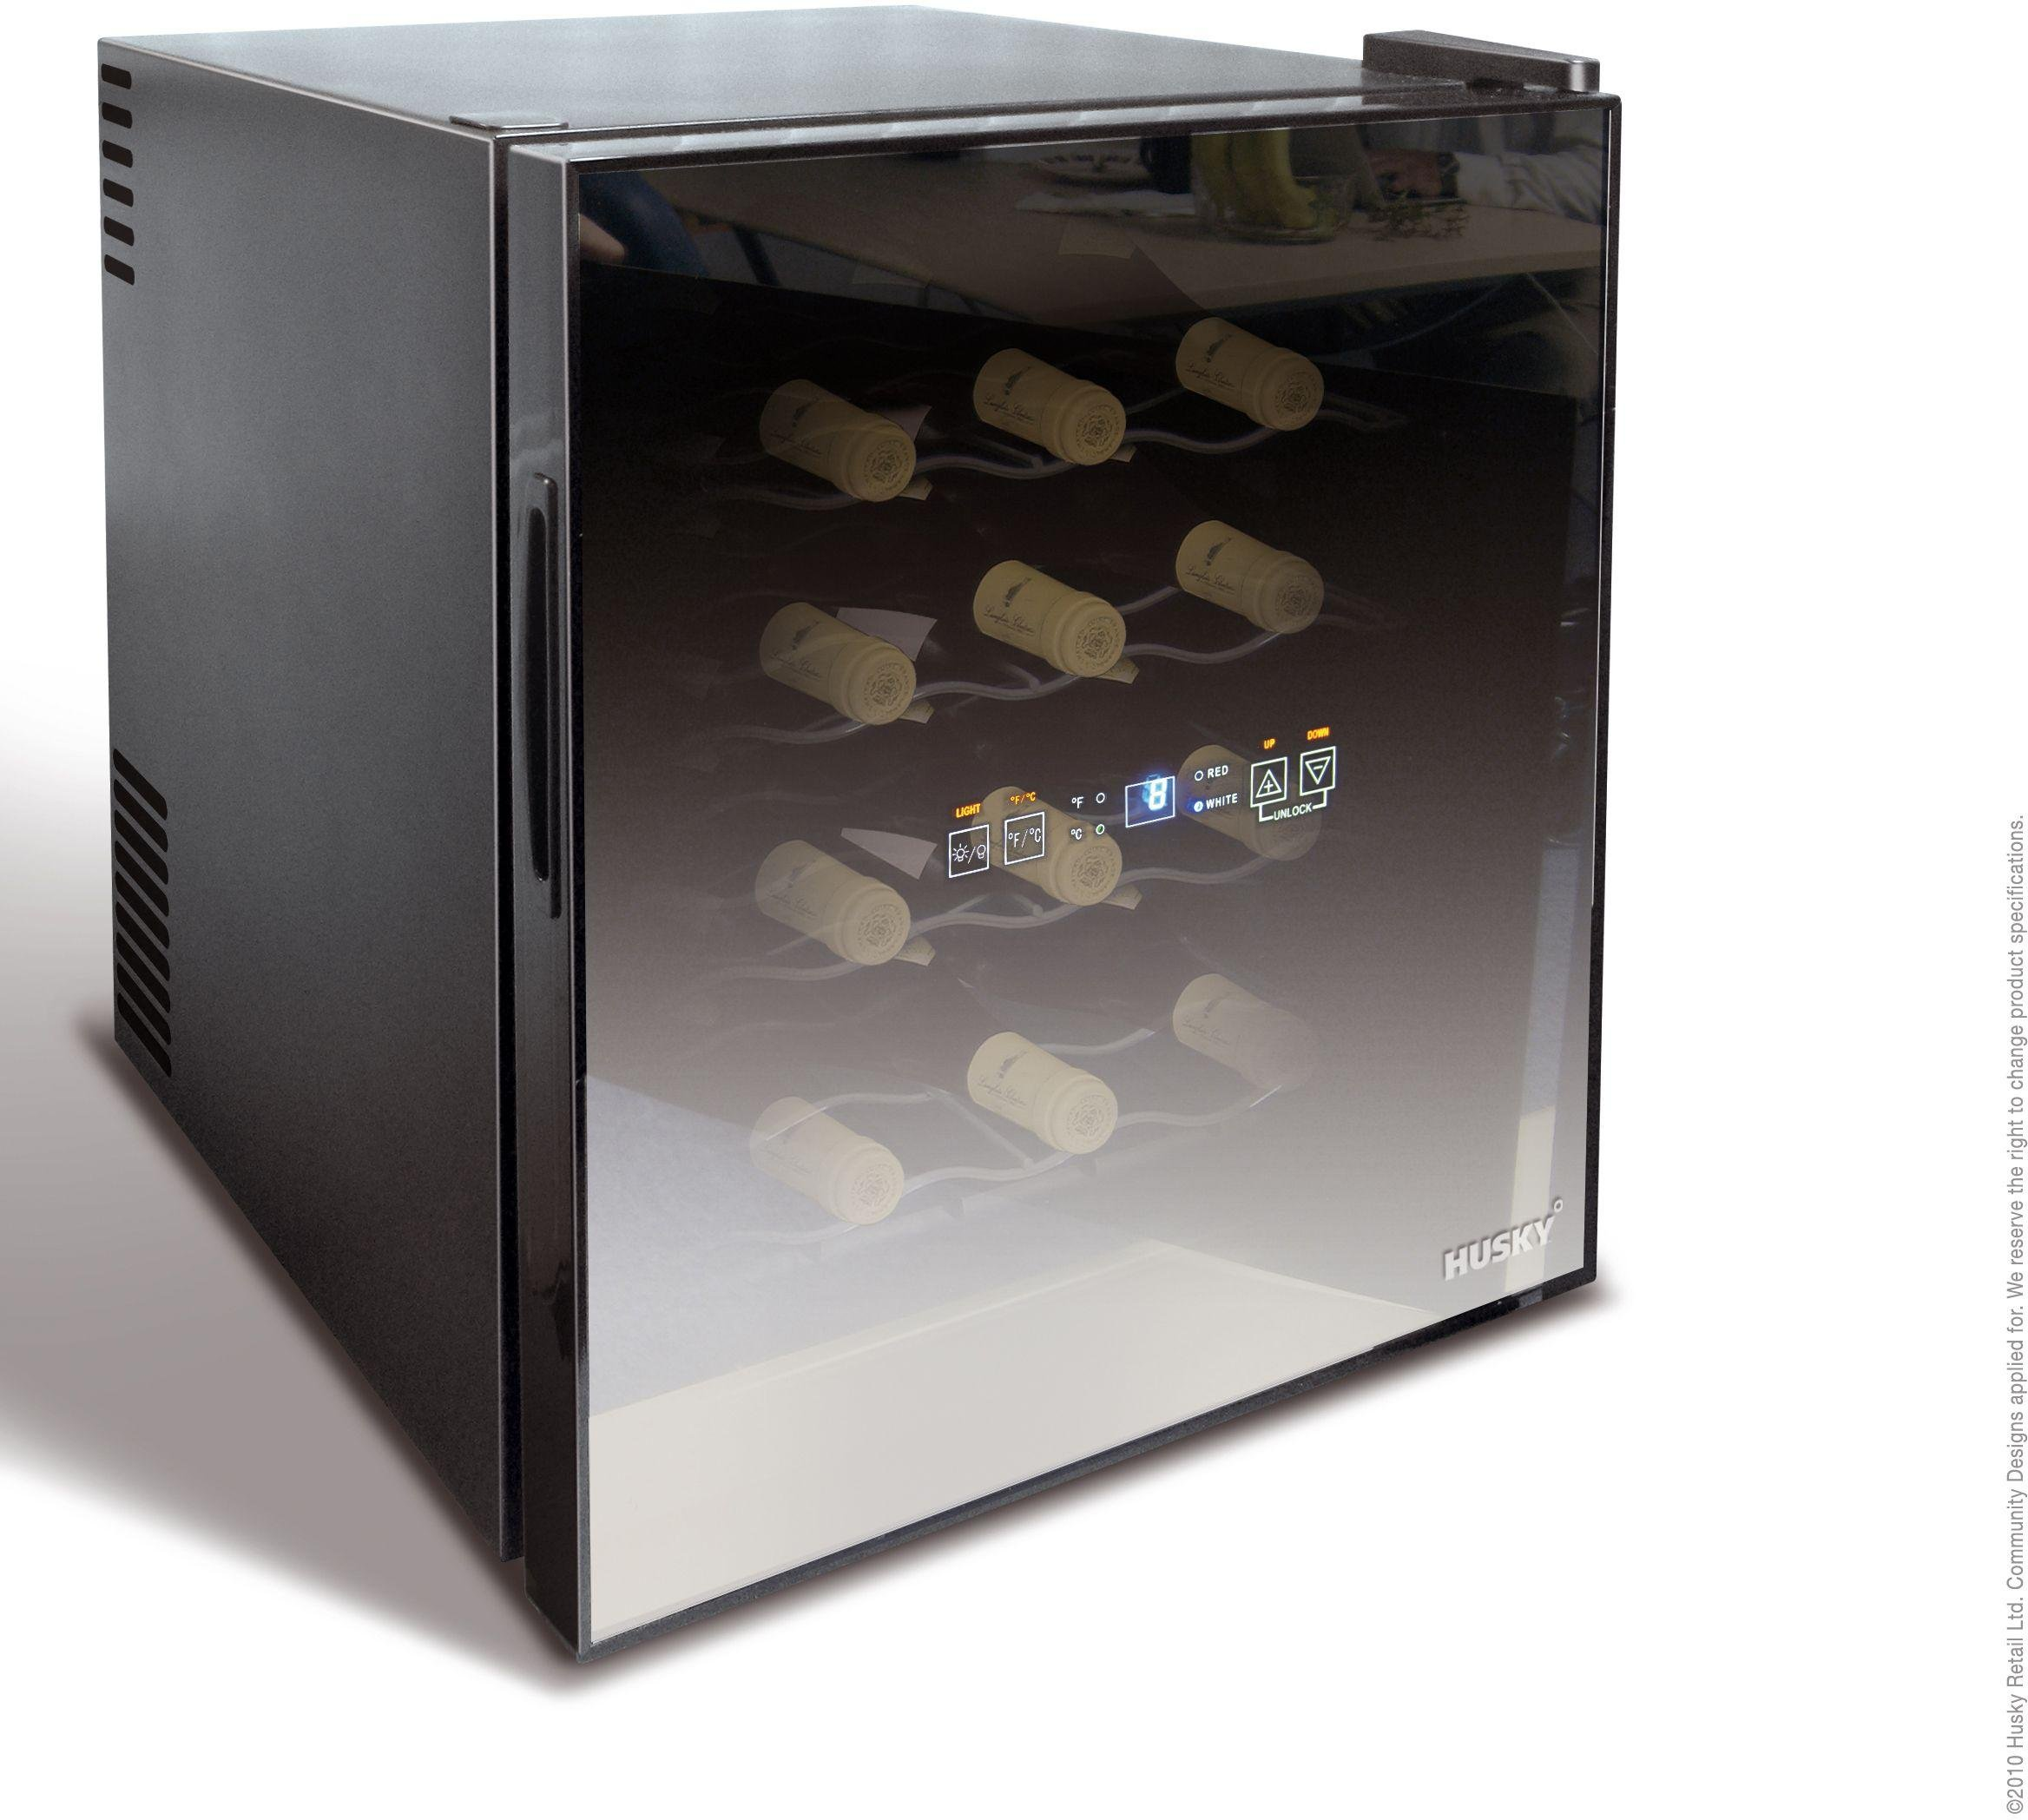 Husky HN5 Reflections Tabletop Wine Cooler - Black.